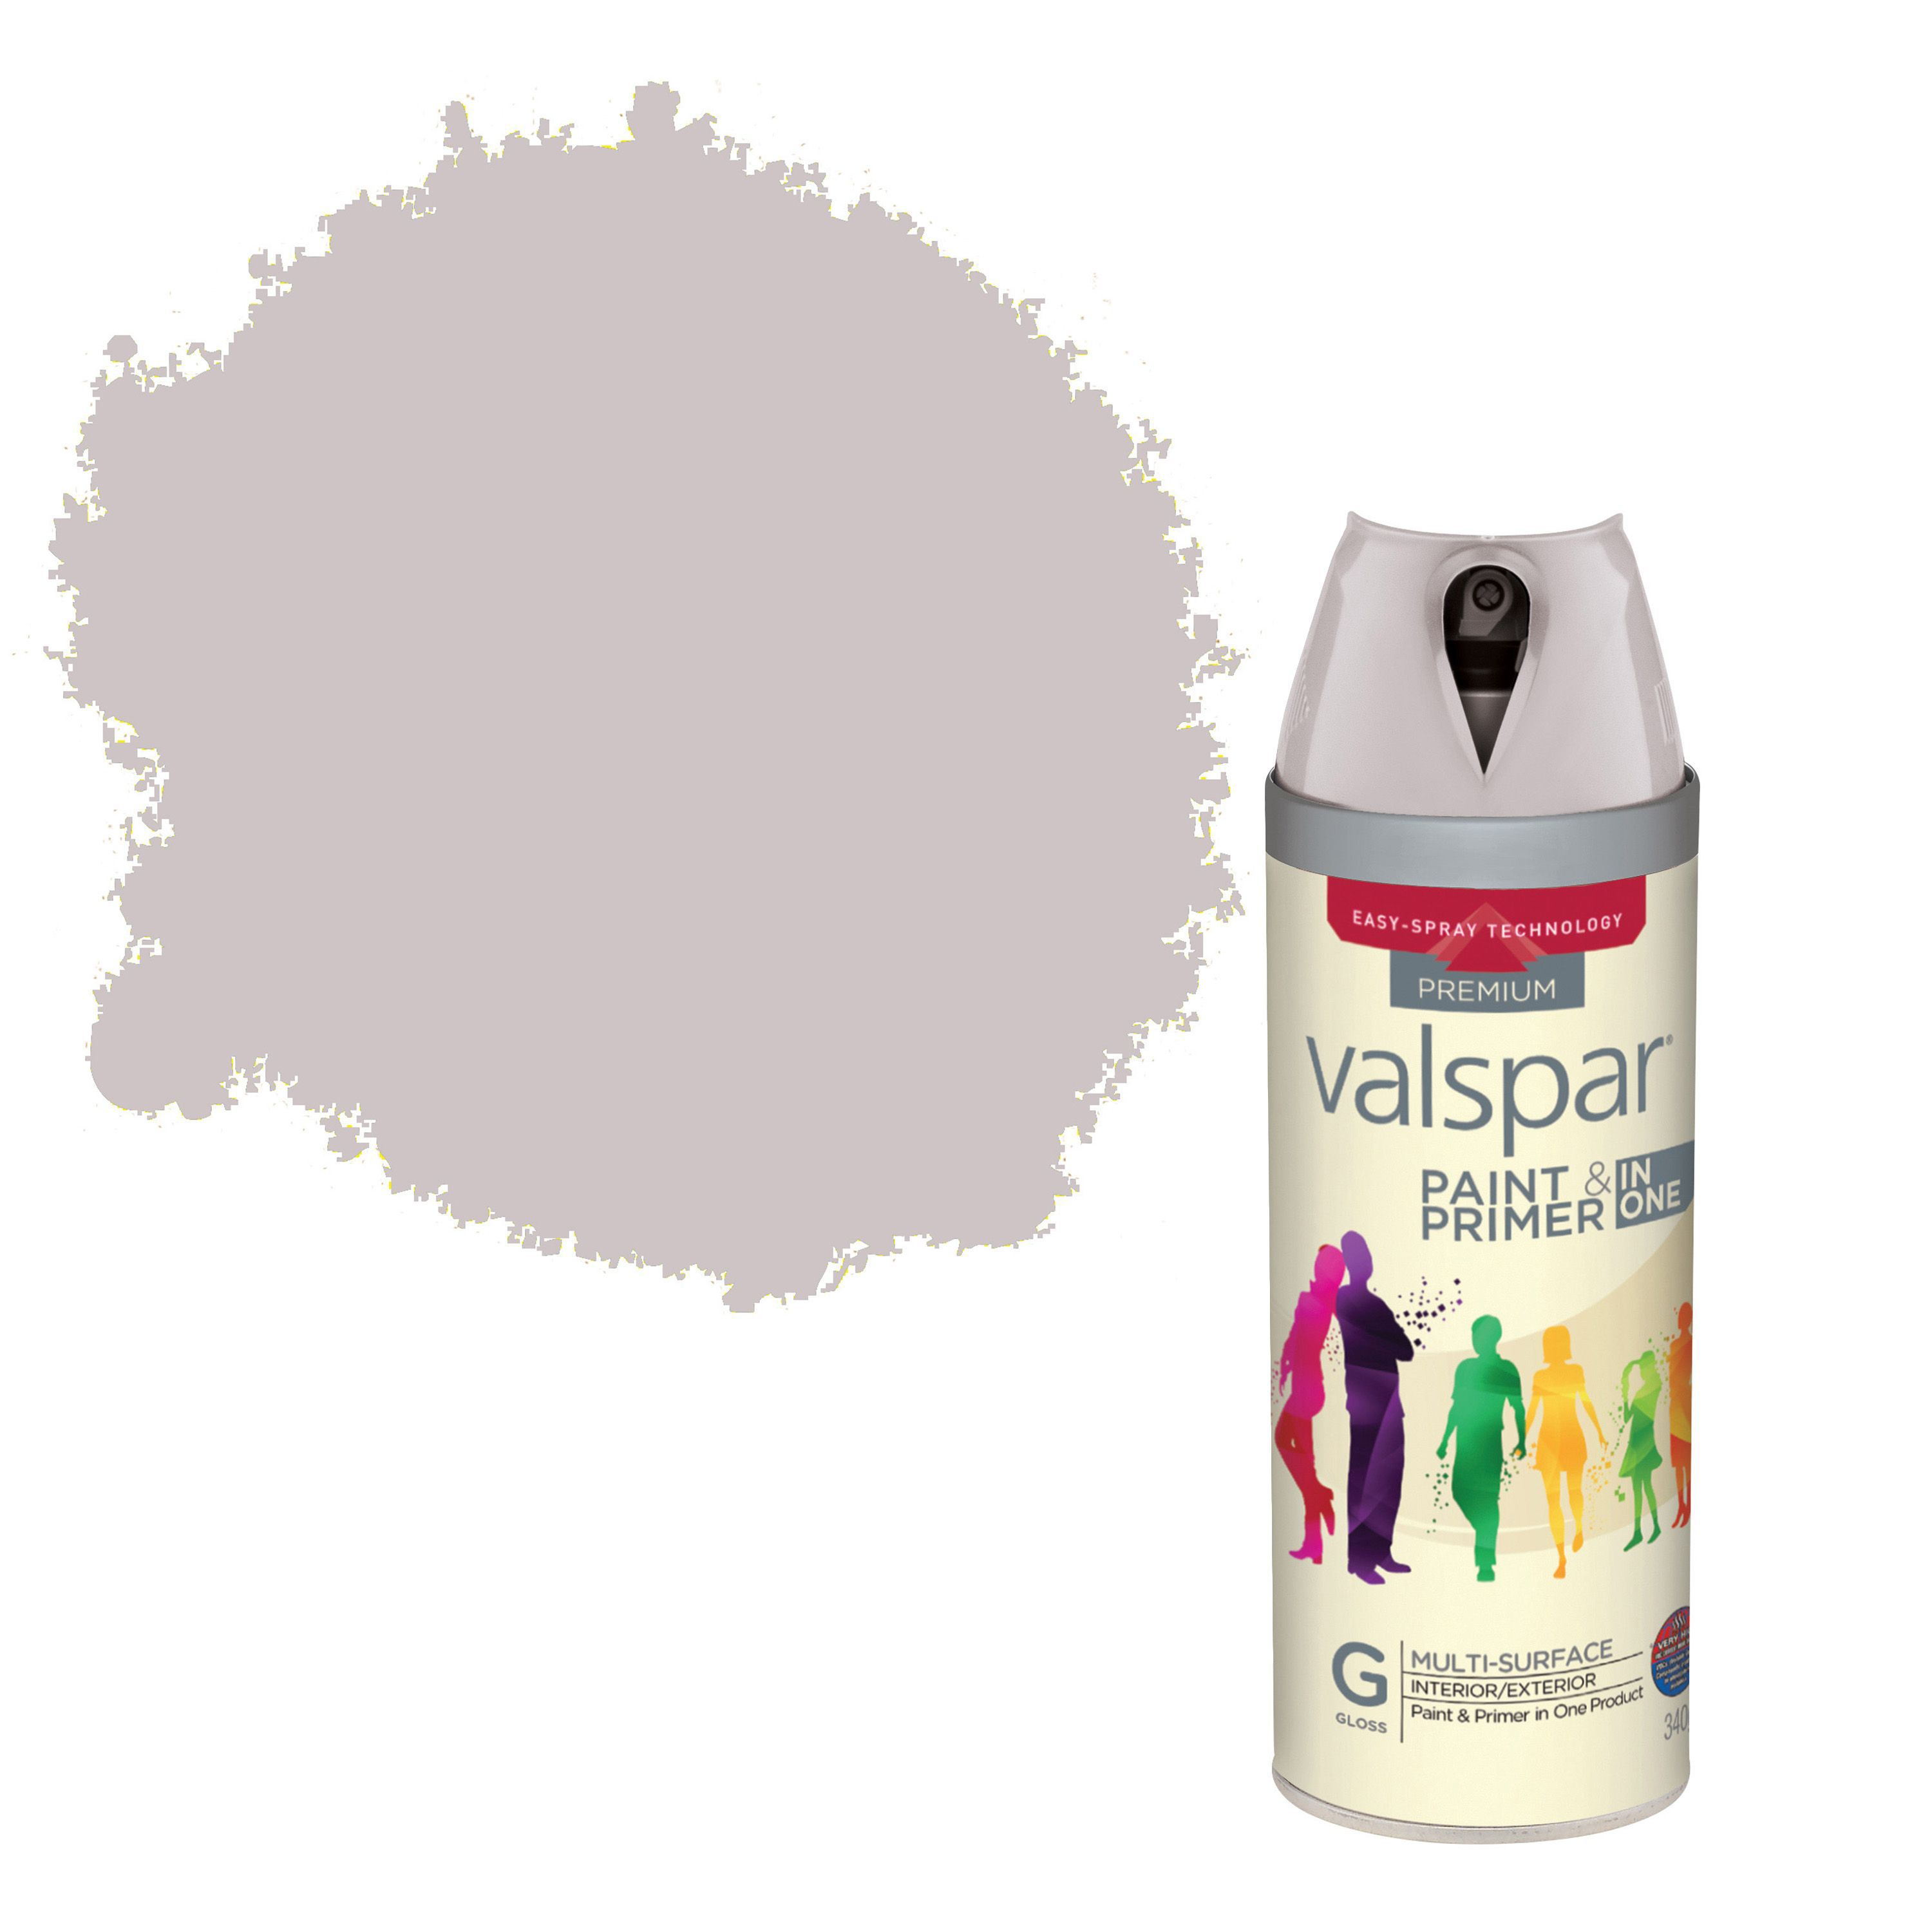 Valspar Paint And Primer In One Spray Paint